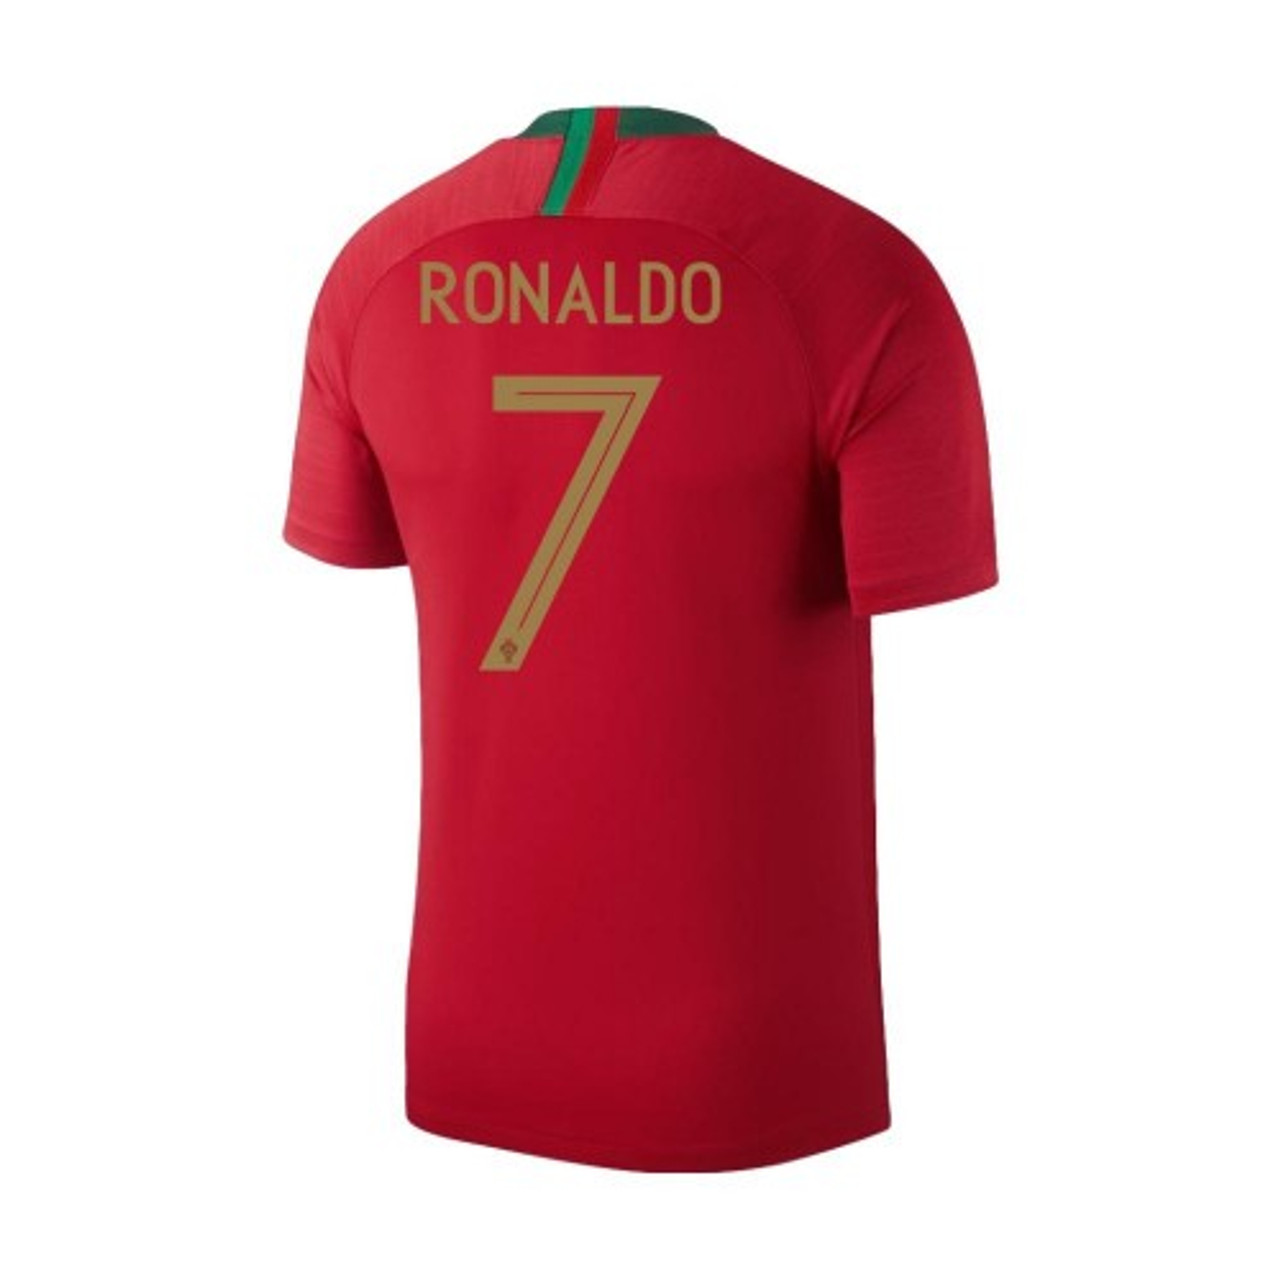 timeless design c9cd3 059dc NIKE PORTUGAL 2018 HOME BOYS RONALDO JERSEY